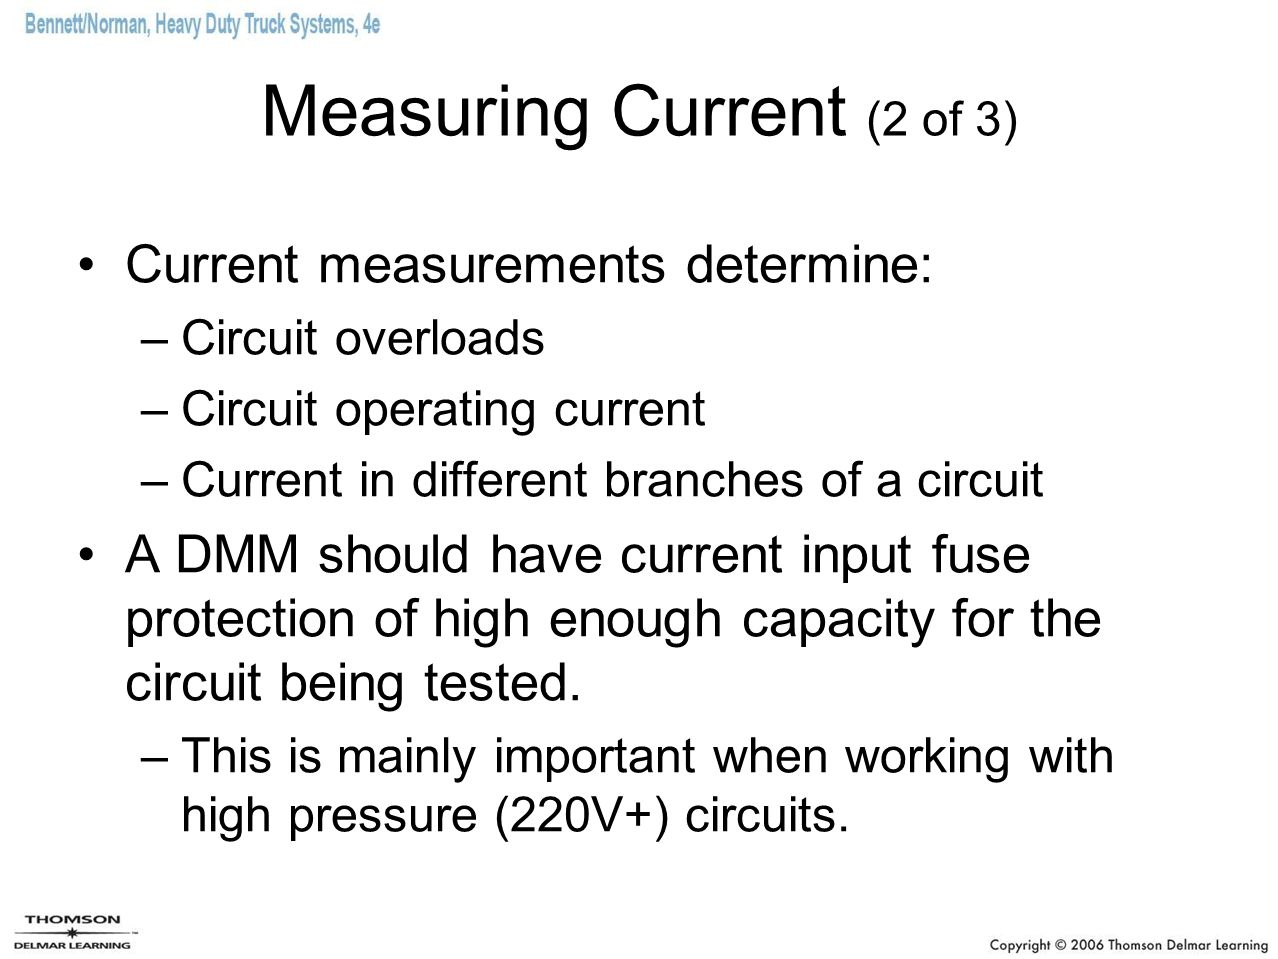 Measuring Current (2 of 3)